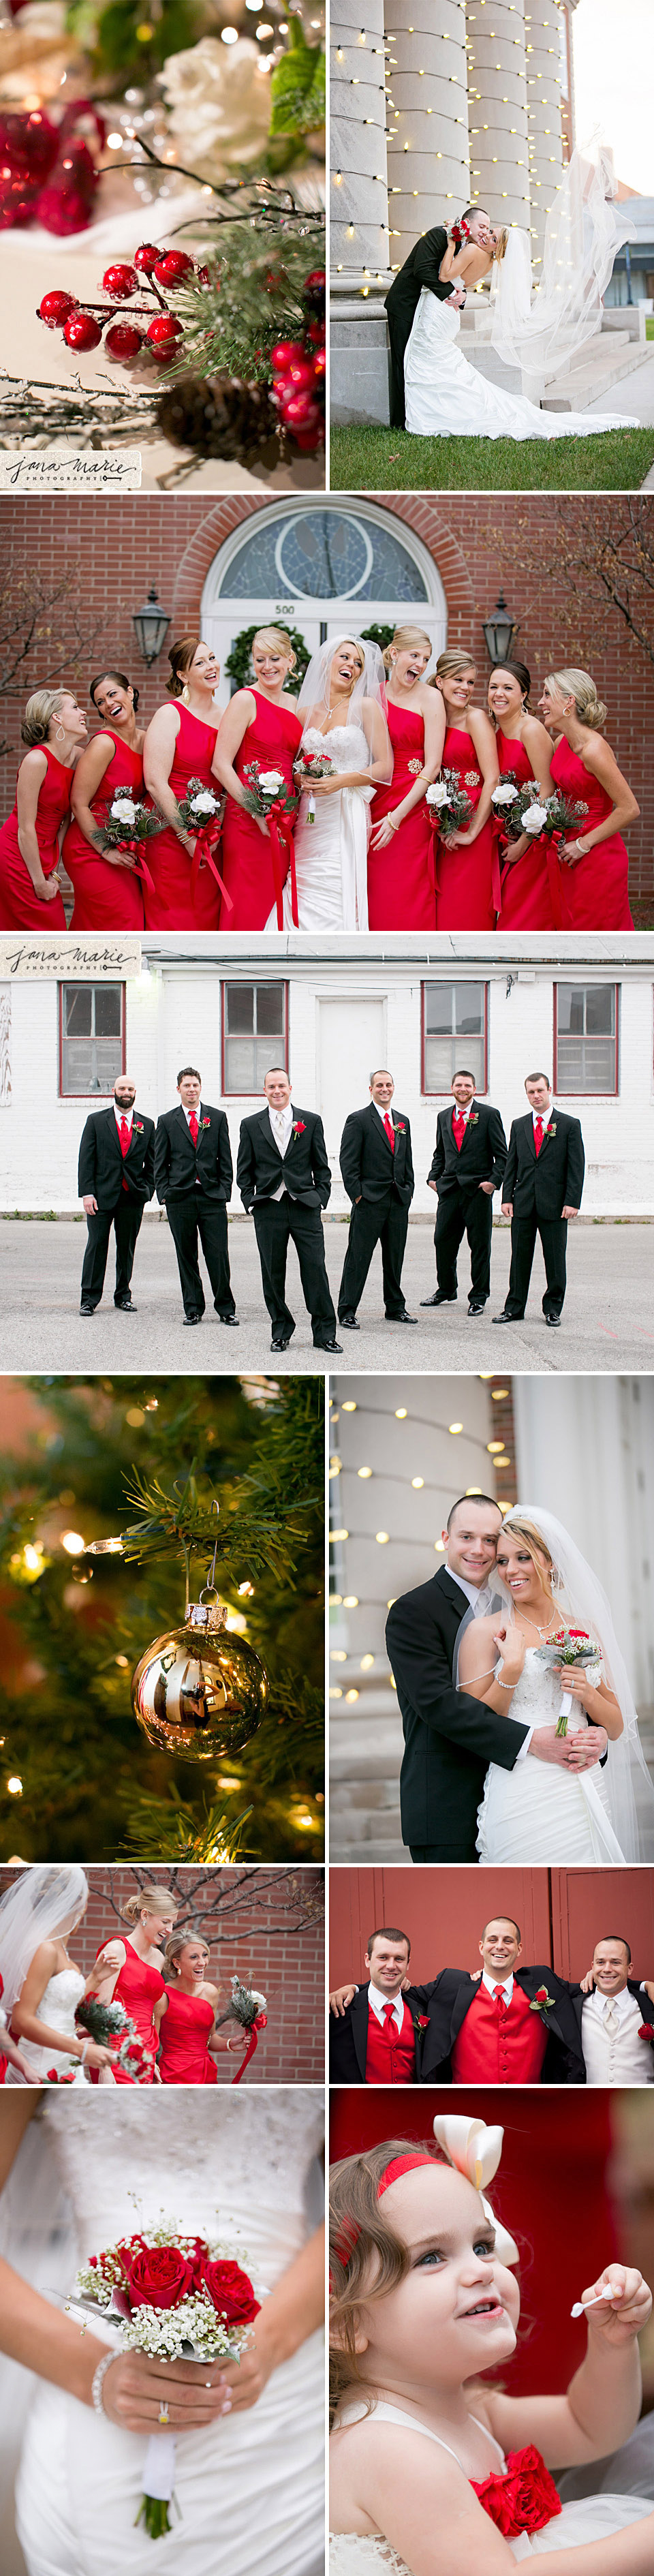 Bridal party, bride and groom, Ornaments, Christmas trees, winter receptions, Jana Marie photos